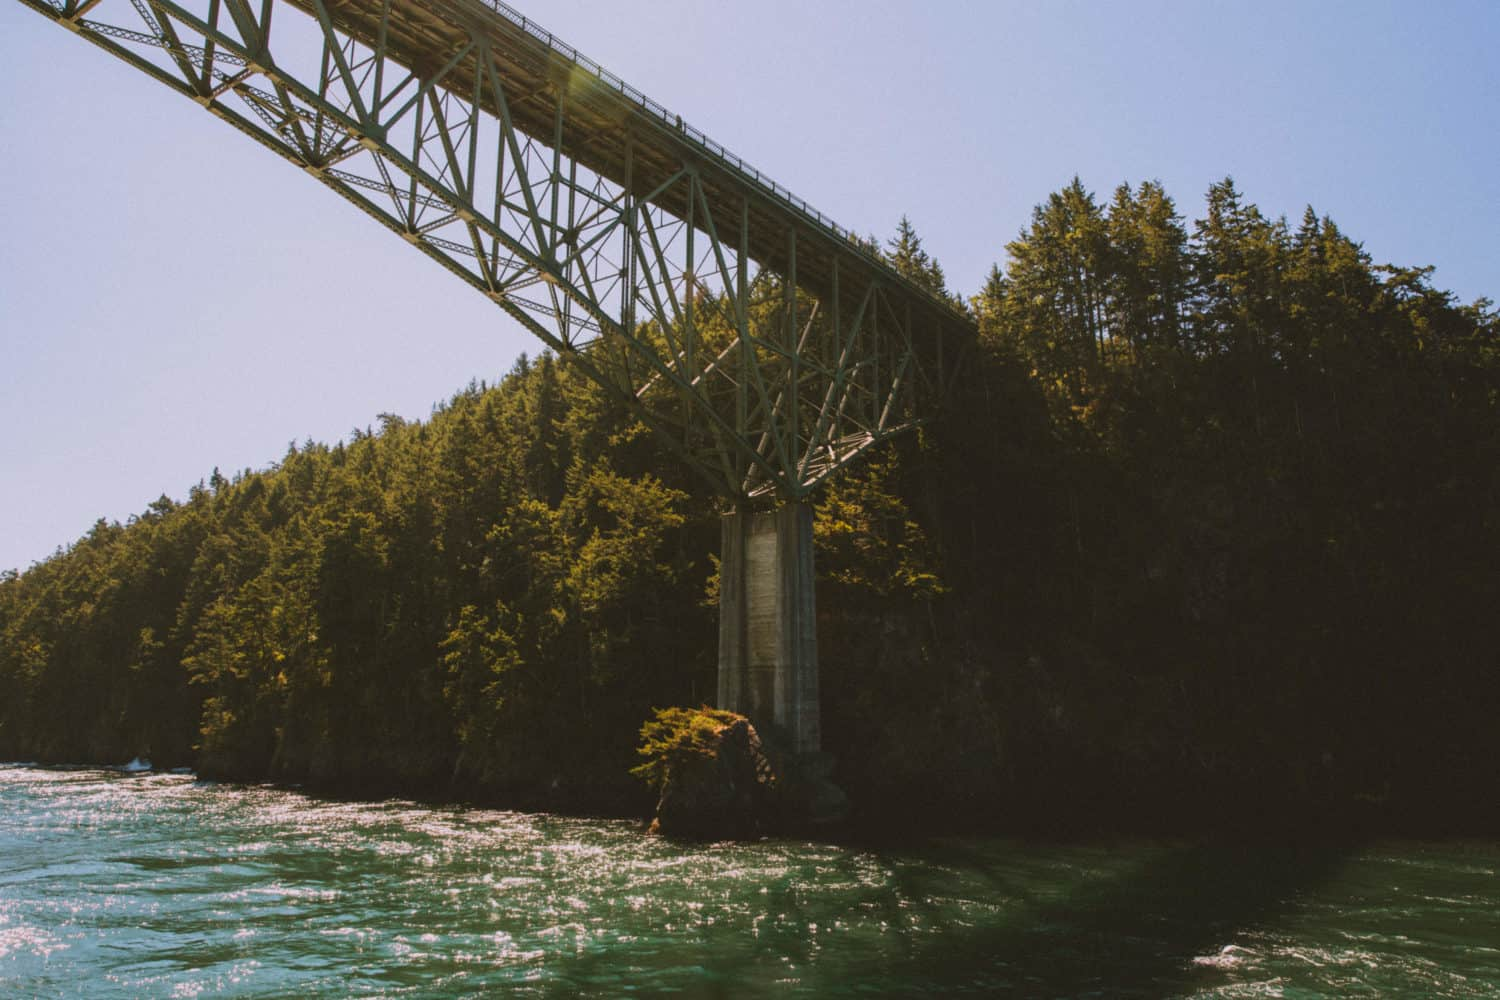 Amazing Images of Washington - Deception Pass